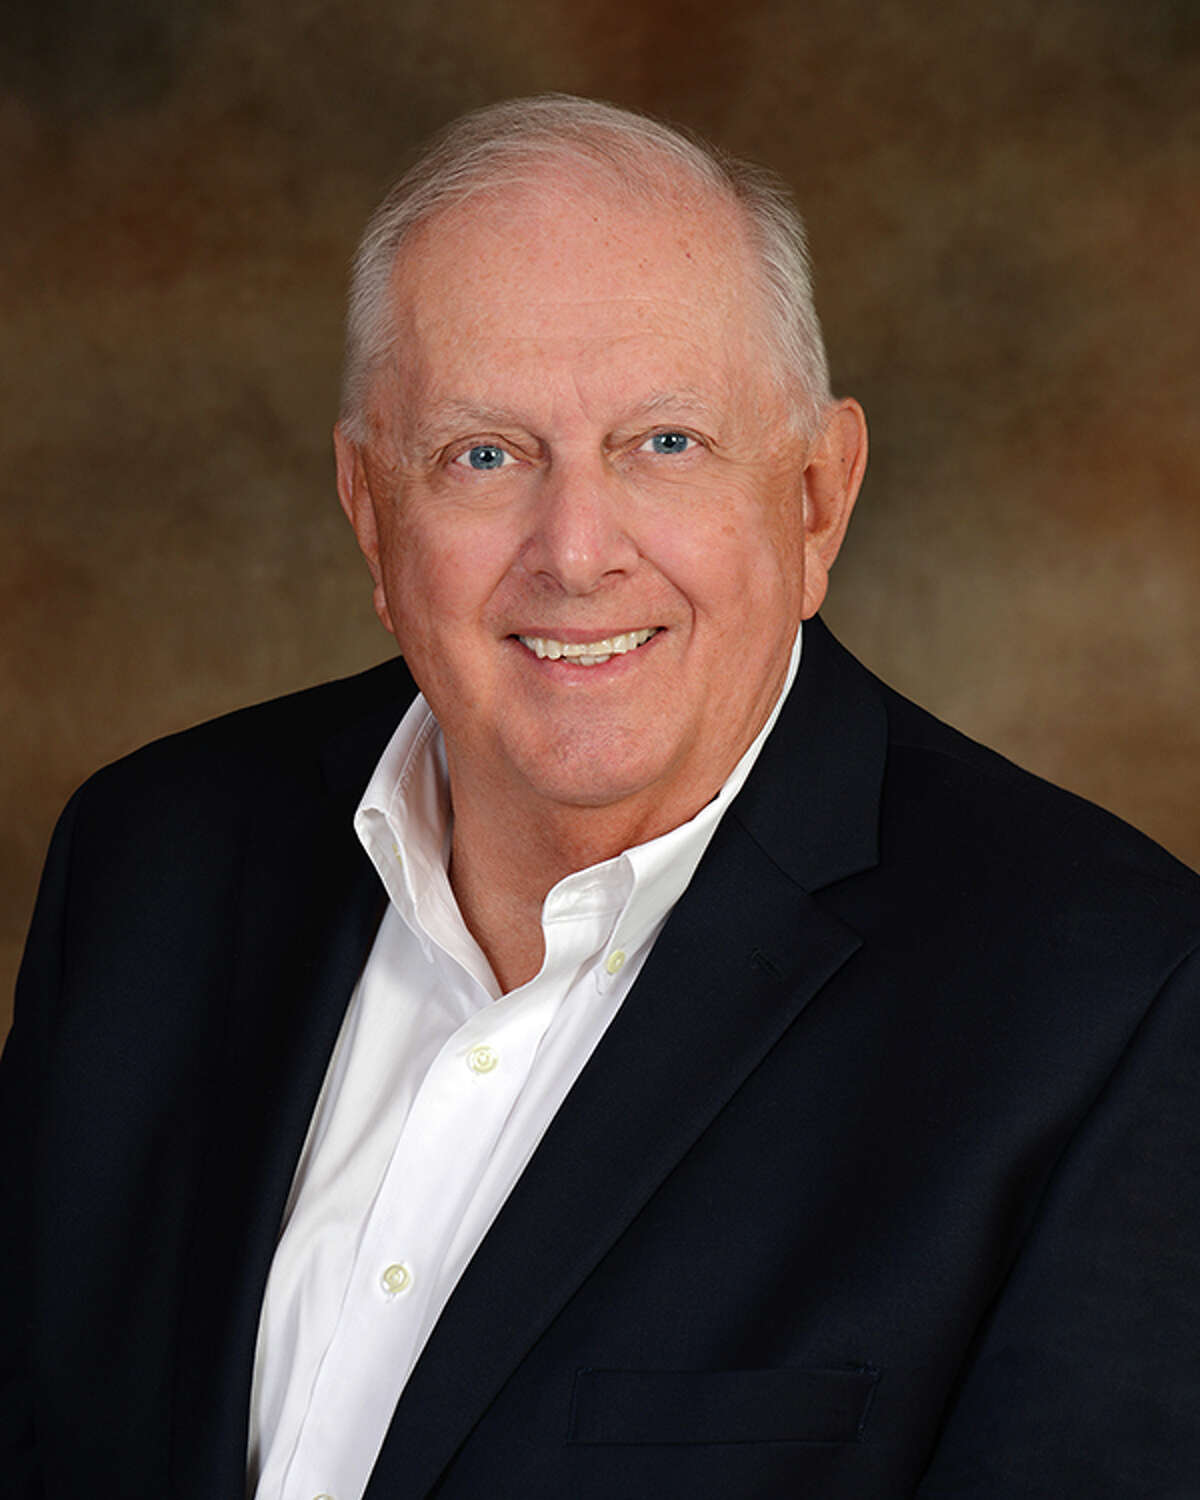 Bruce Rieser, member of The Woodlands Township Board of Directors, first moved to The Woodlands in 1989.